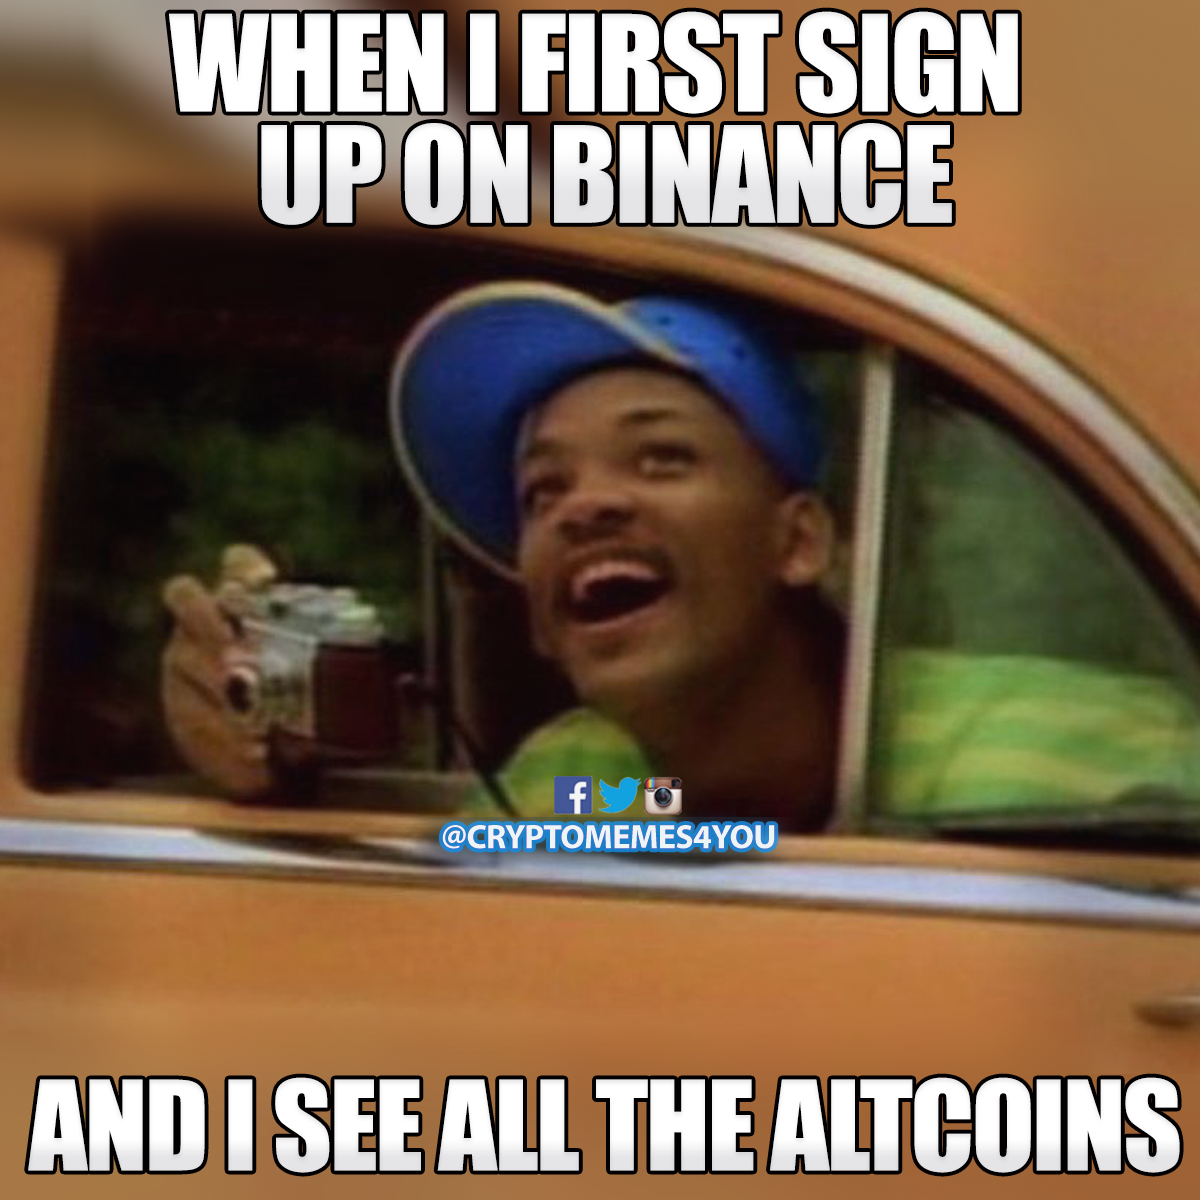 It was like shopping in walmart. #cryptolife #binance #cryptomemes |  Finance infographic, Sales and marketing jobs, Bitcoin